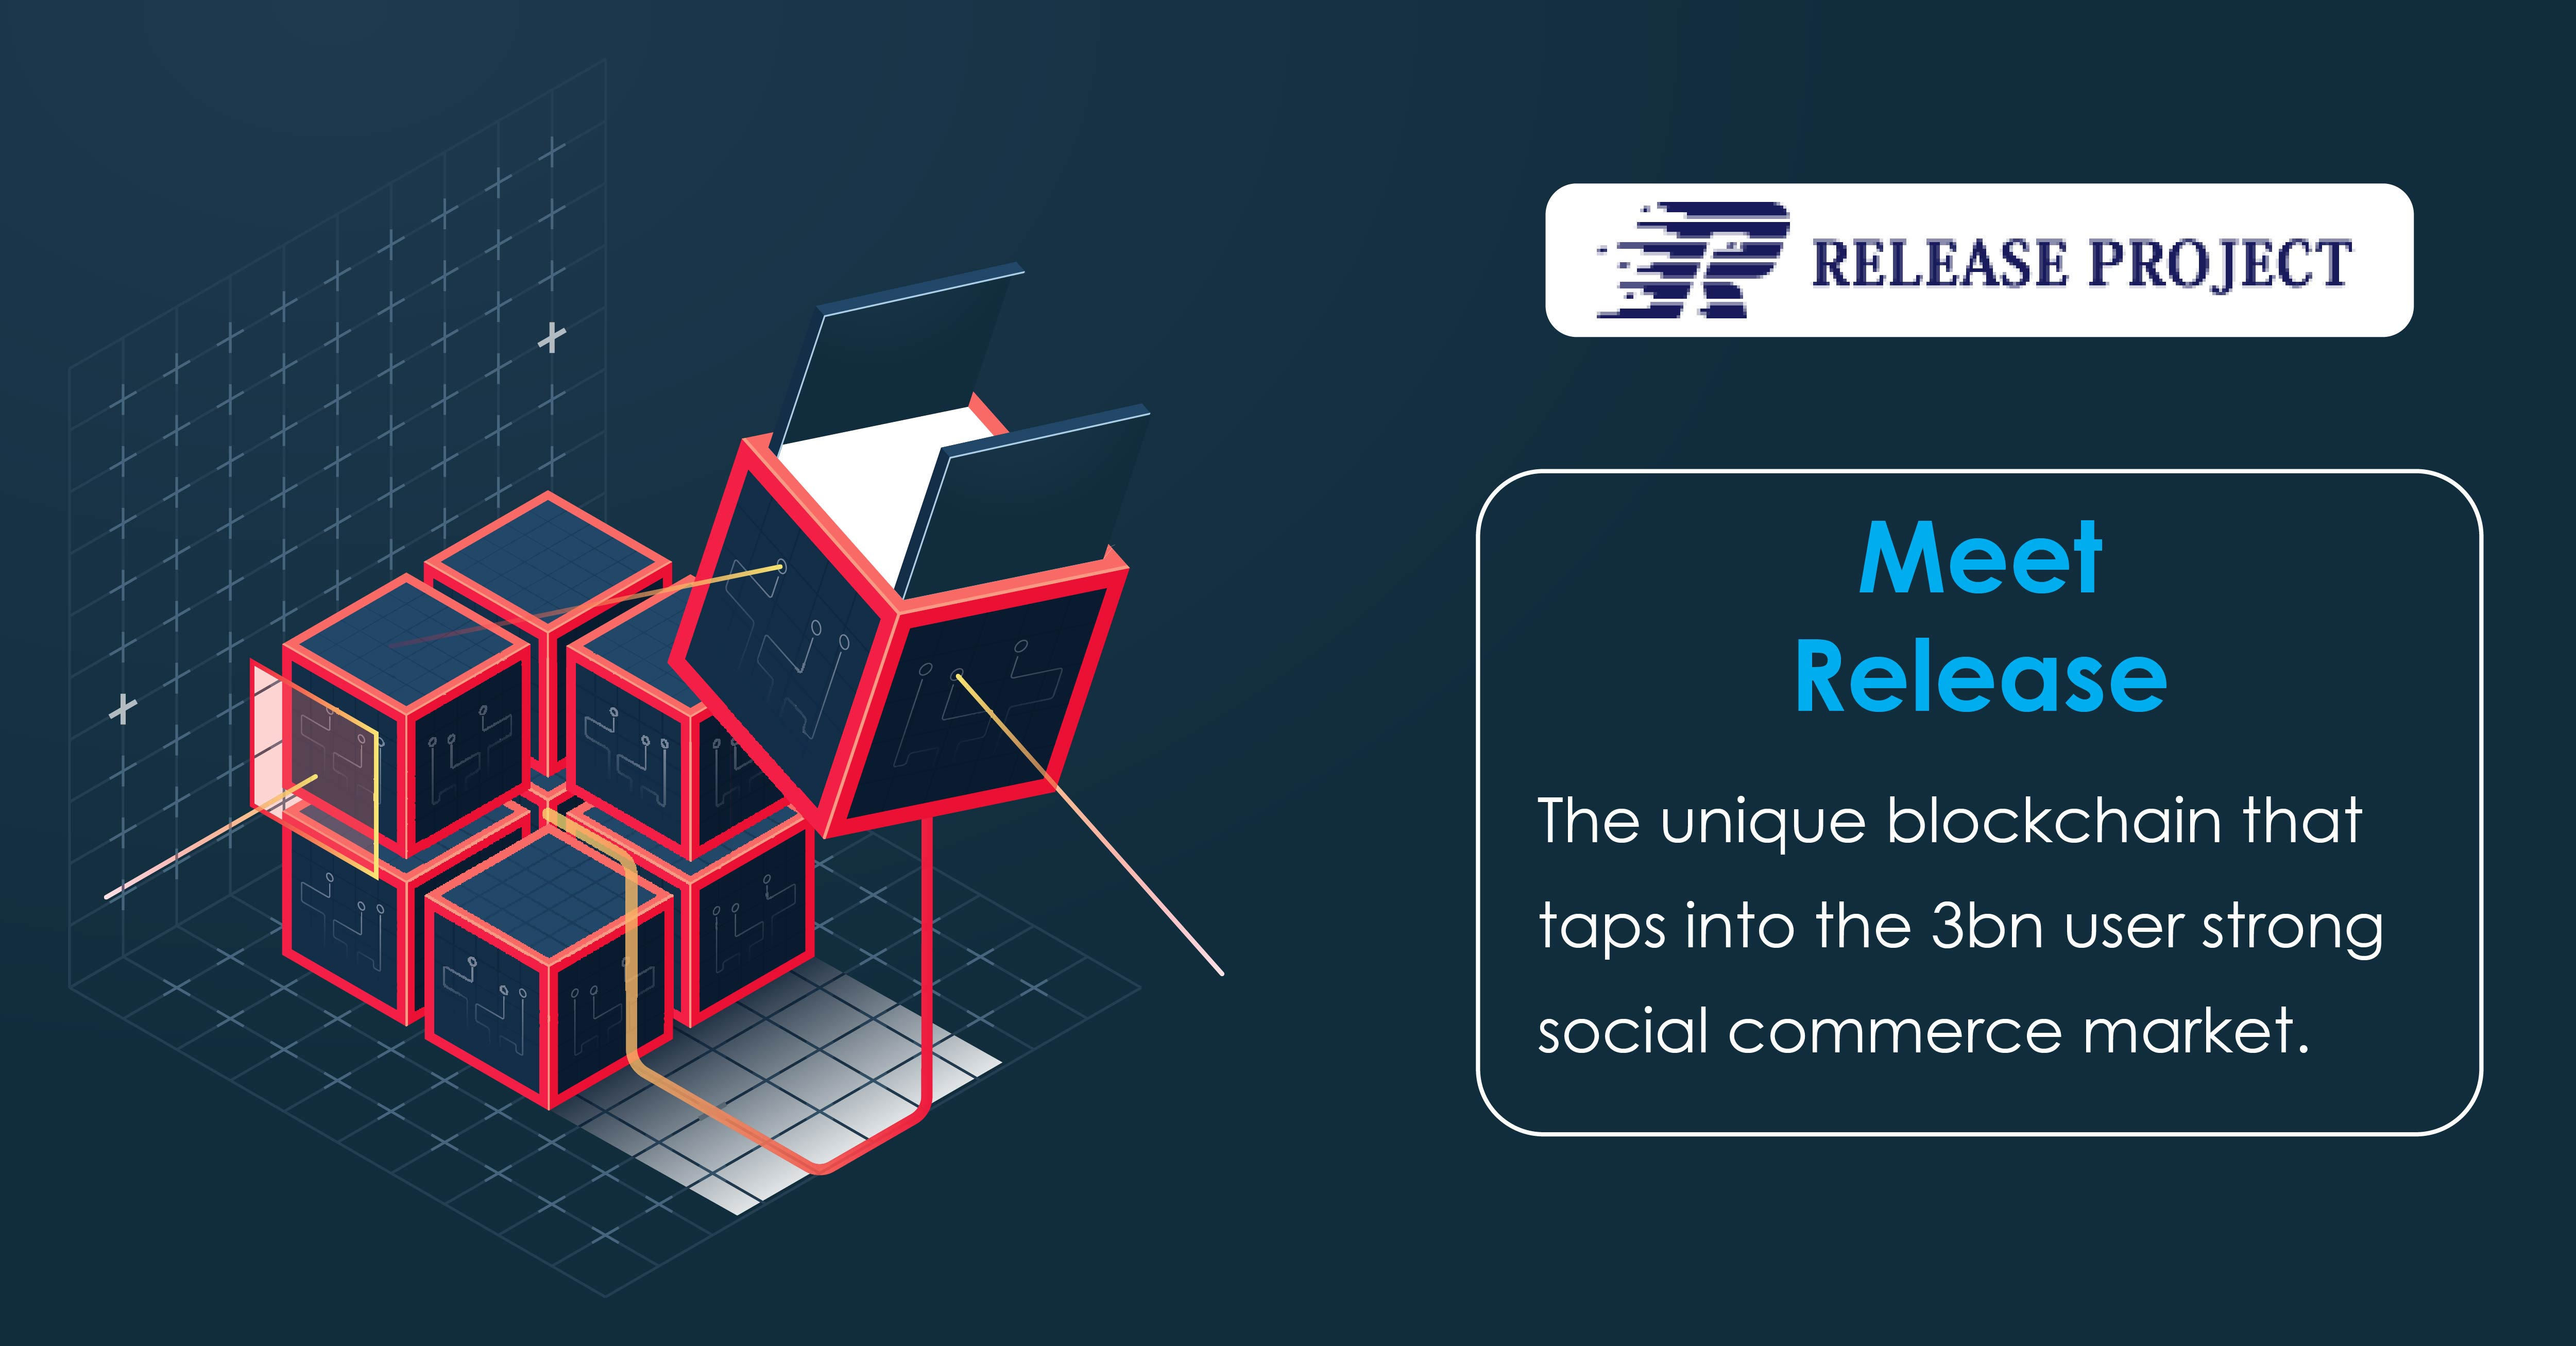 Meet Release: The unique Blockchain that taps into the 3bn user strong social commerce market